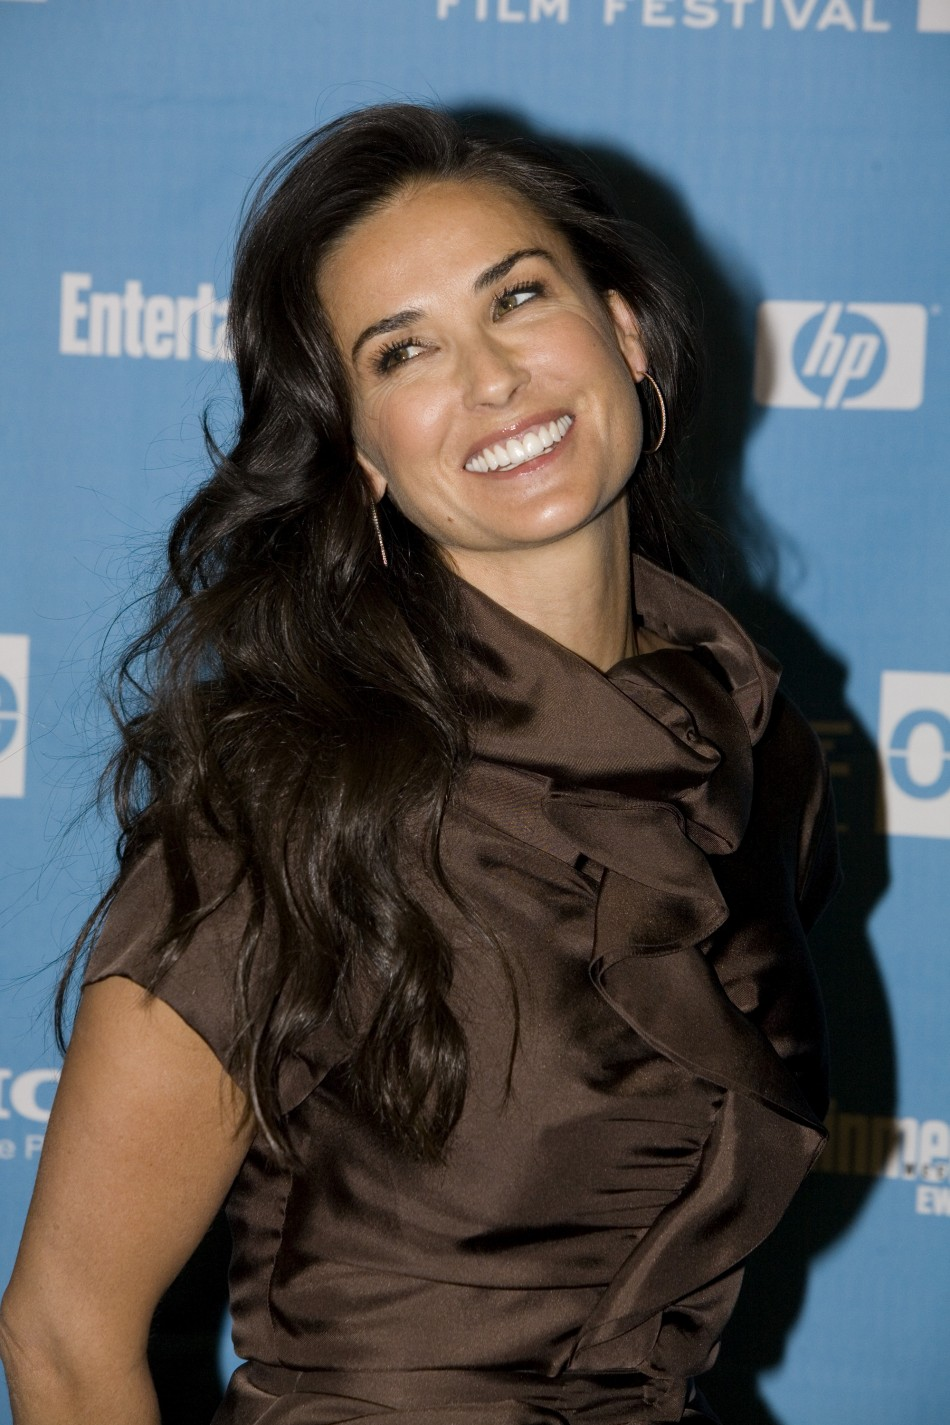 Actress Demi Moore attends the premiere of the movie quotSpreadquot during the 2009 Sundance Film Festival in Park City, Utah.